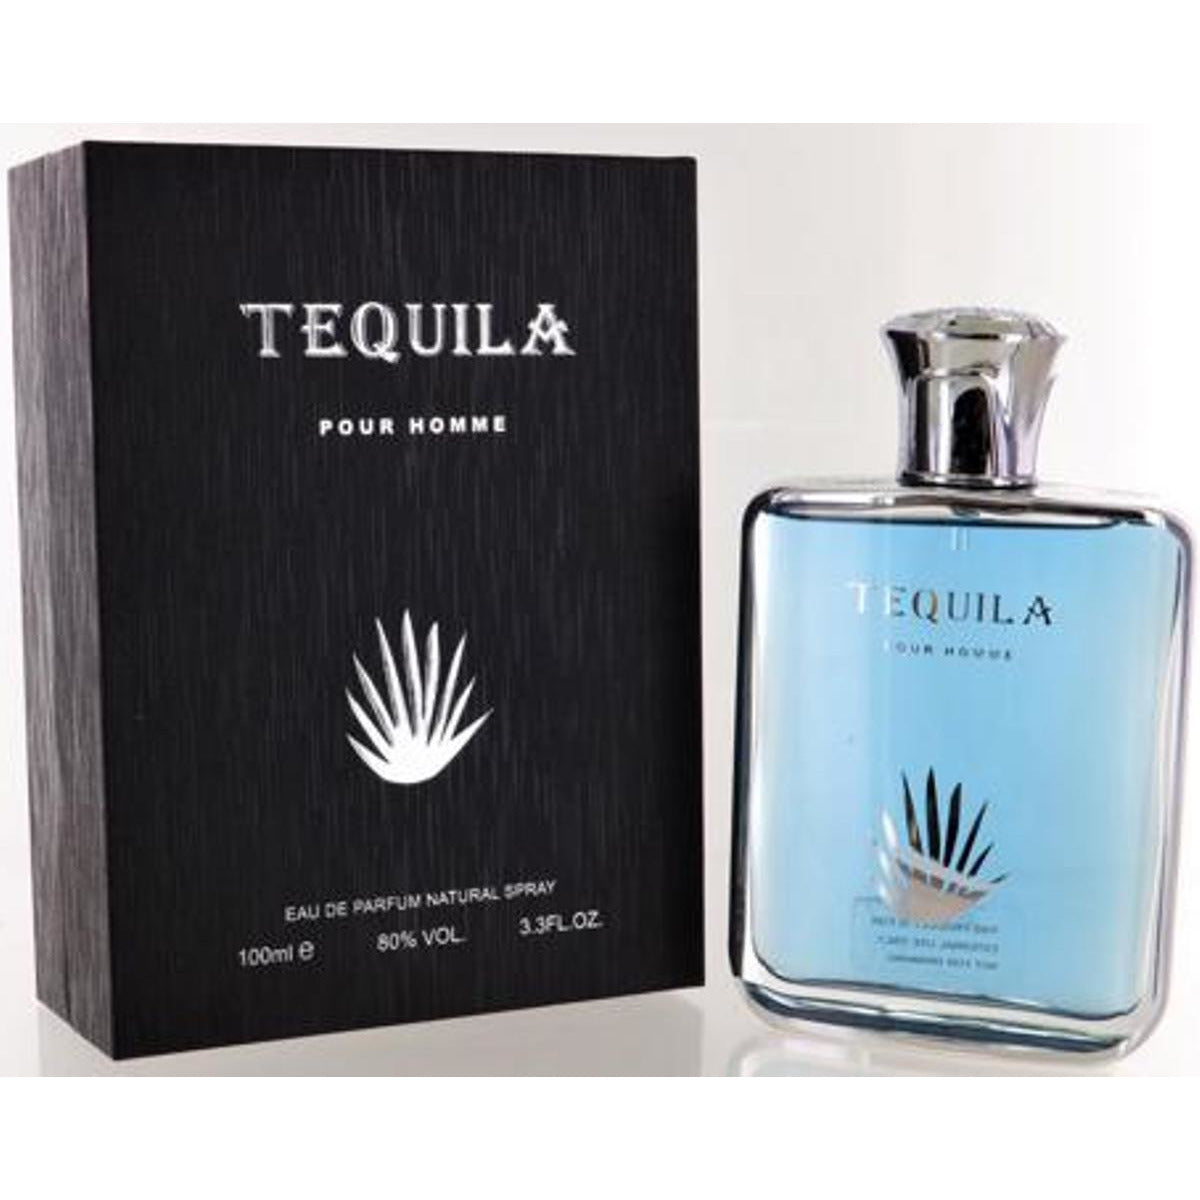 Tequila Pour Homme By Tequila cologne EDP 3.3 / 3.4 oz New in Box